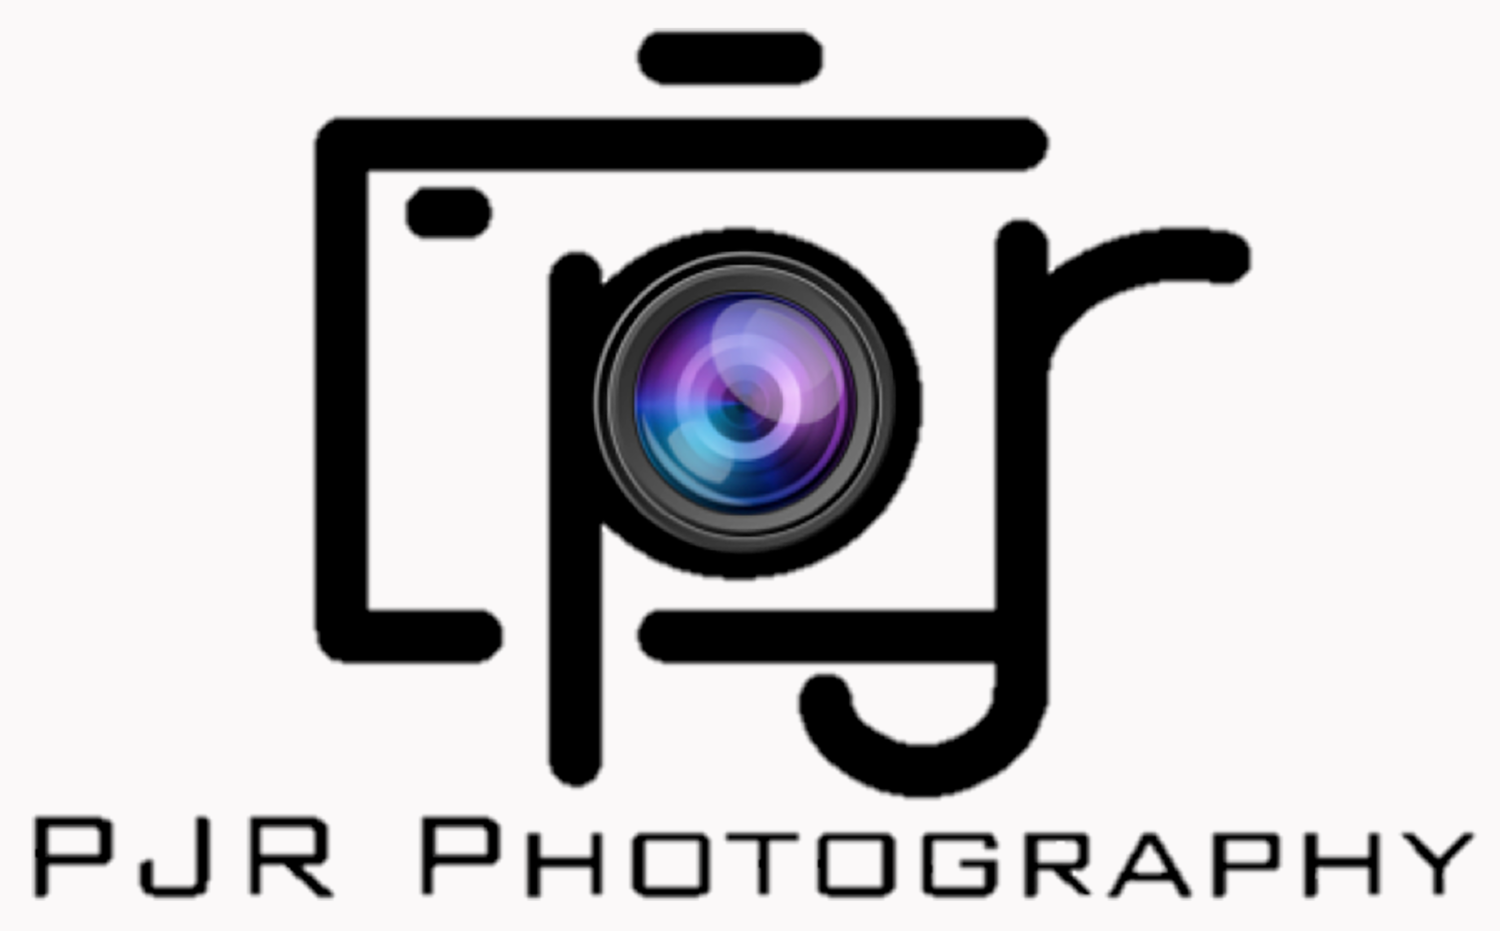 PJR PHOTOGRAPHY